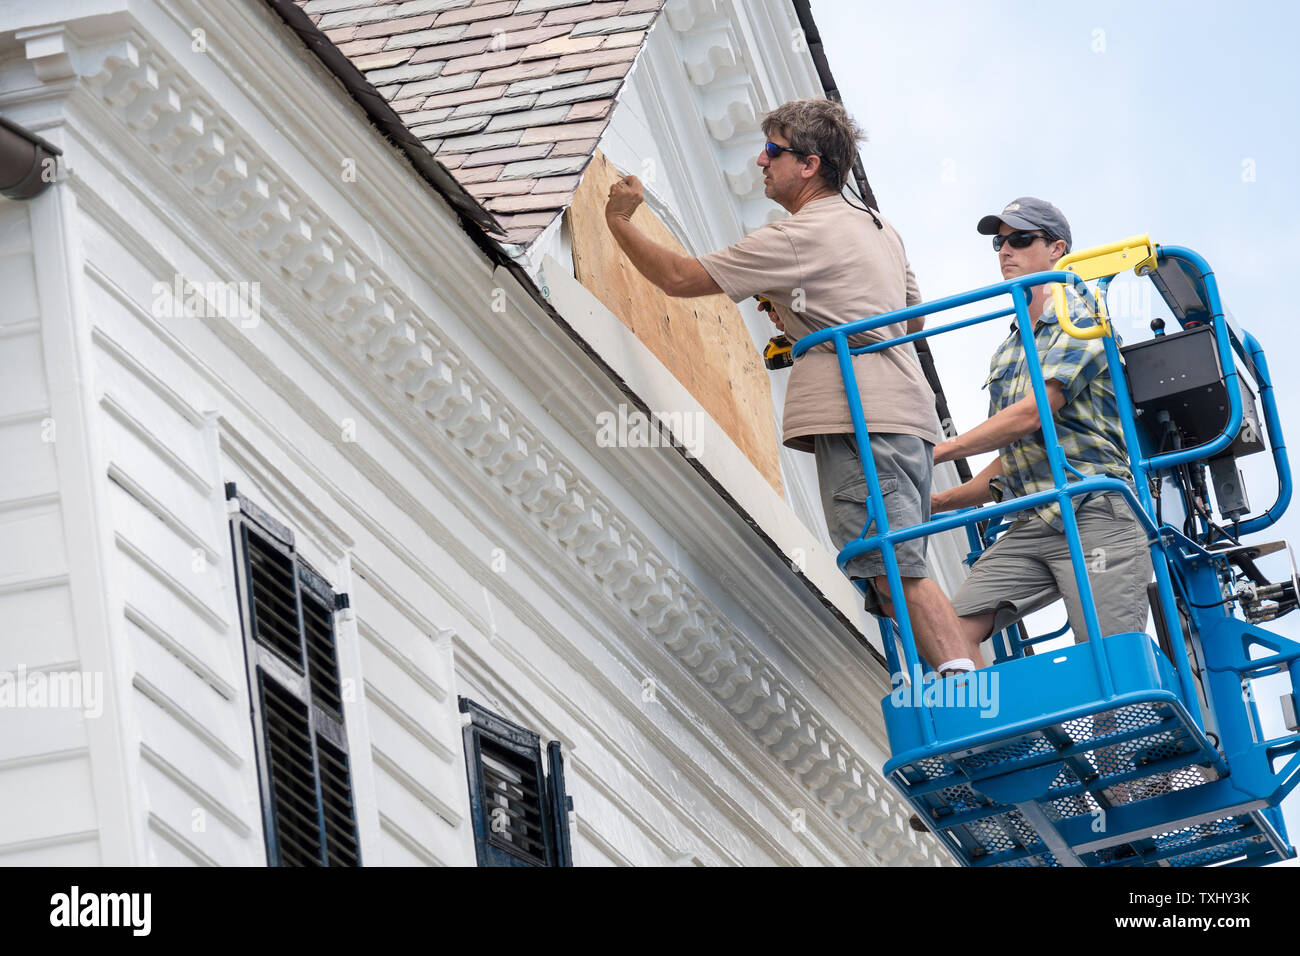 Workers attach hurricane shutters to a historic home along the Charleston Battery in preparation for approaching Hurricane Florence September 11, 2018 in Charleston, South Carolina. Florence, a category 4 storm, is expected to hit the coast between South and North Carolina and could be the strongest storm on record for the East Coast of the United States. Photo by Richard Ellis/UPI Stock Photo